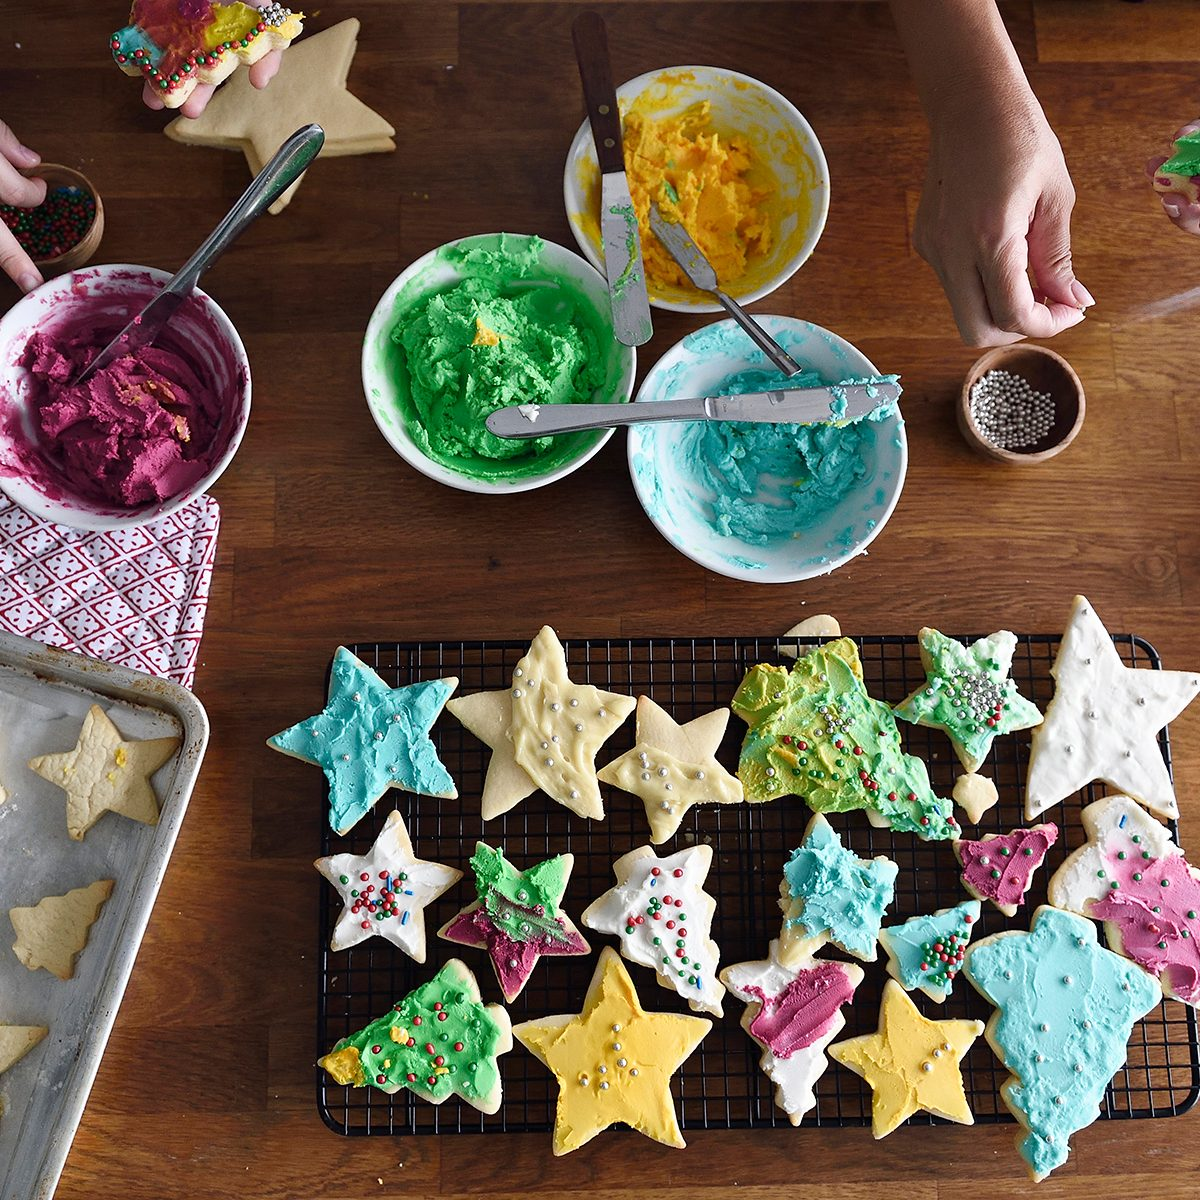 cookie decorating tips Woman And Child Decorating Cookies Together